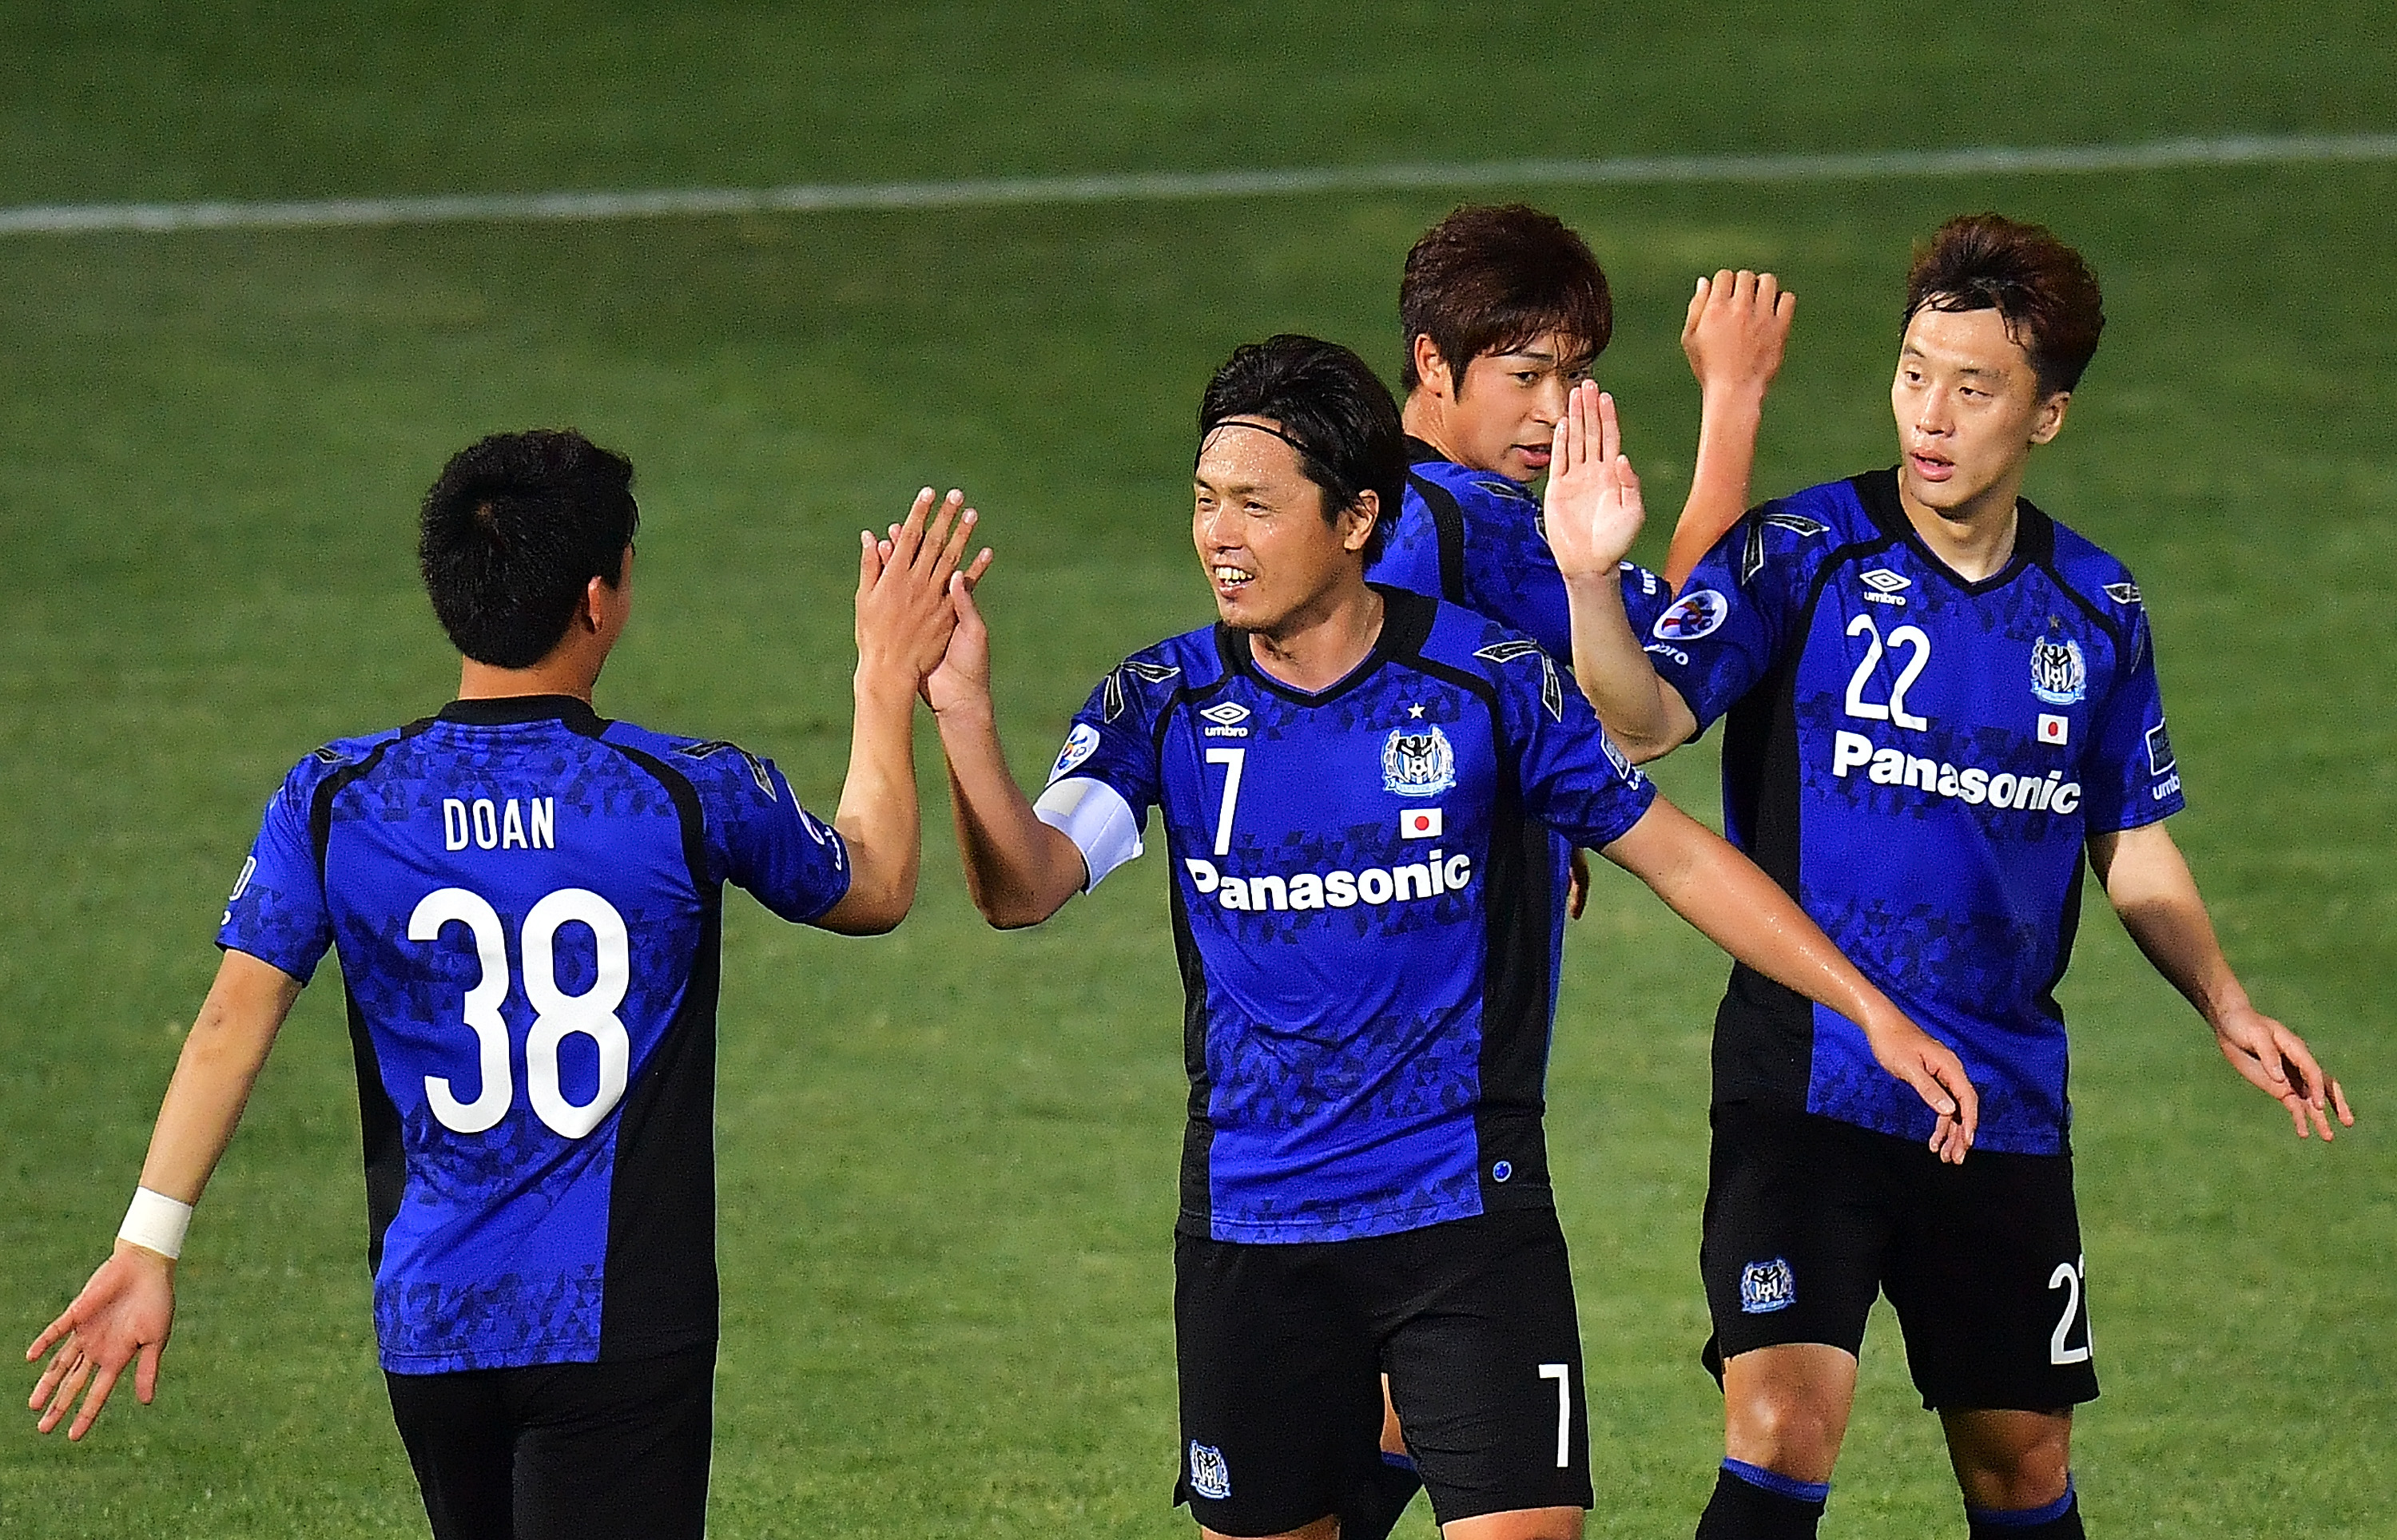 Afc Champions League 2017 Roundup Gamba Osaka And Guangzhou Evergrande Register Resounding Wins Goal Com